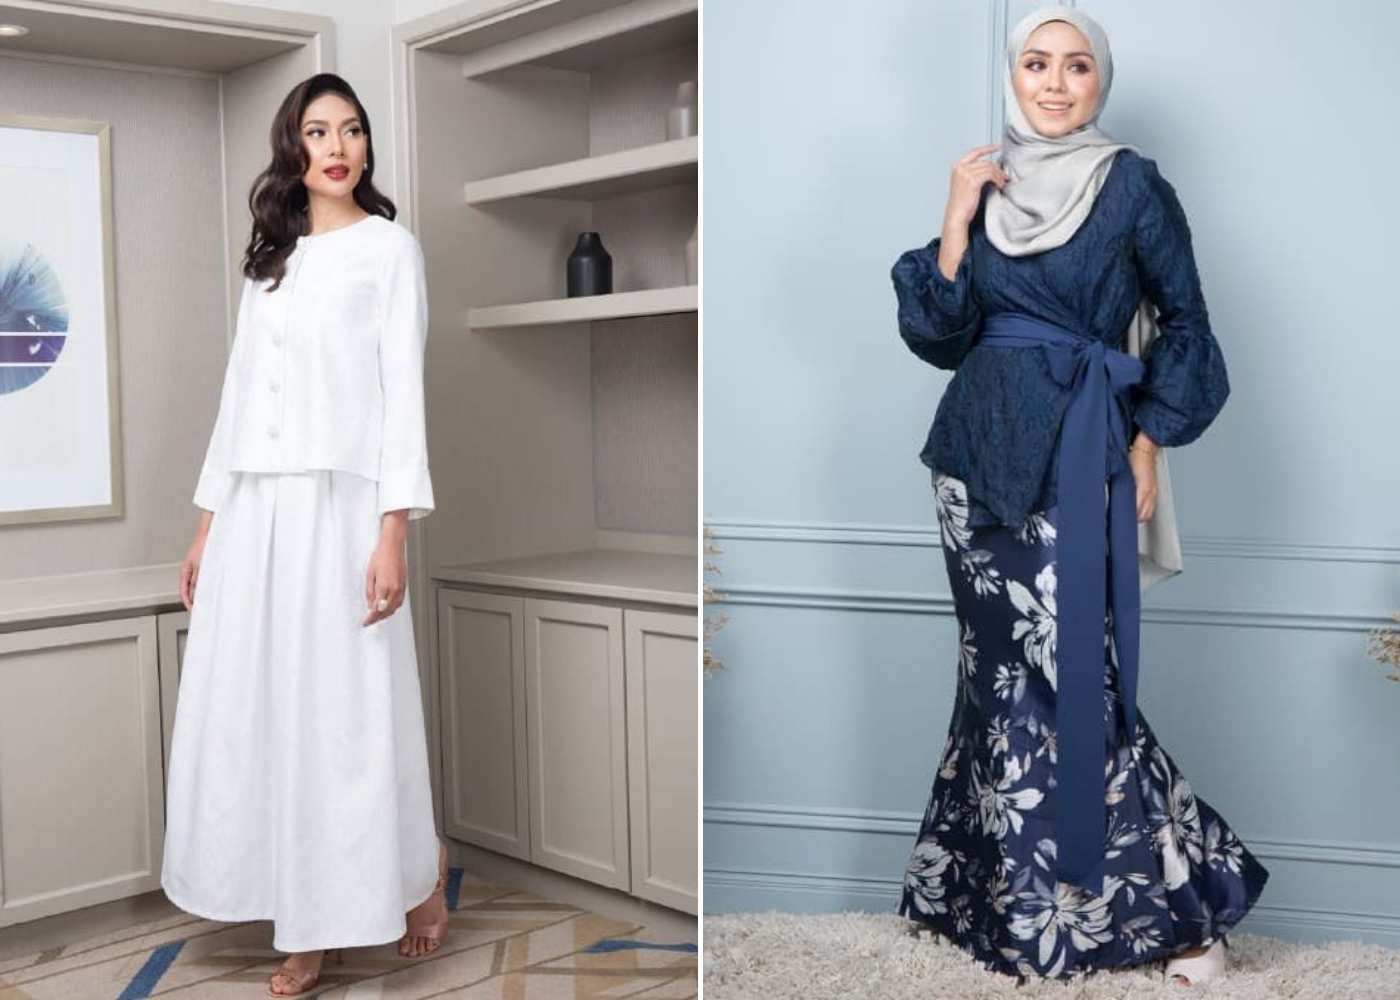 Baju Kurung Ideas for a Sundown Outing in Malaysia